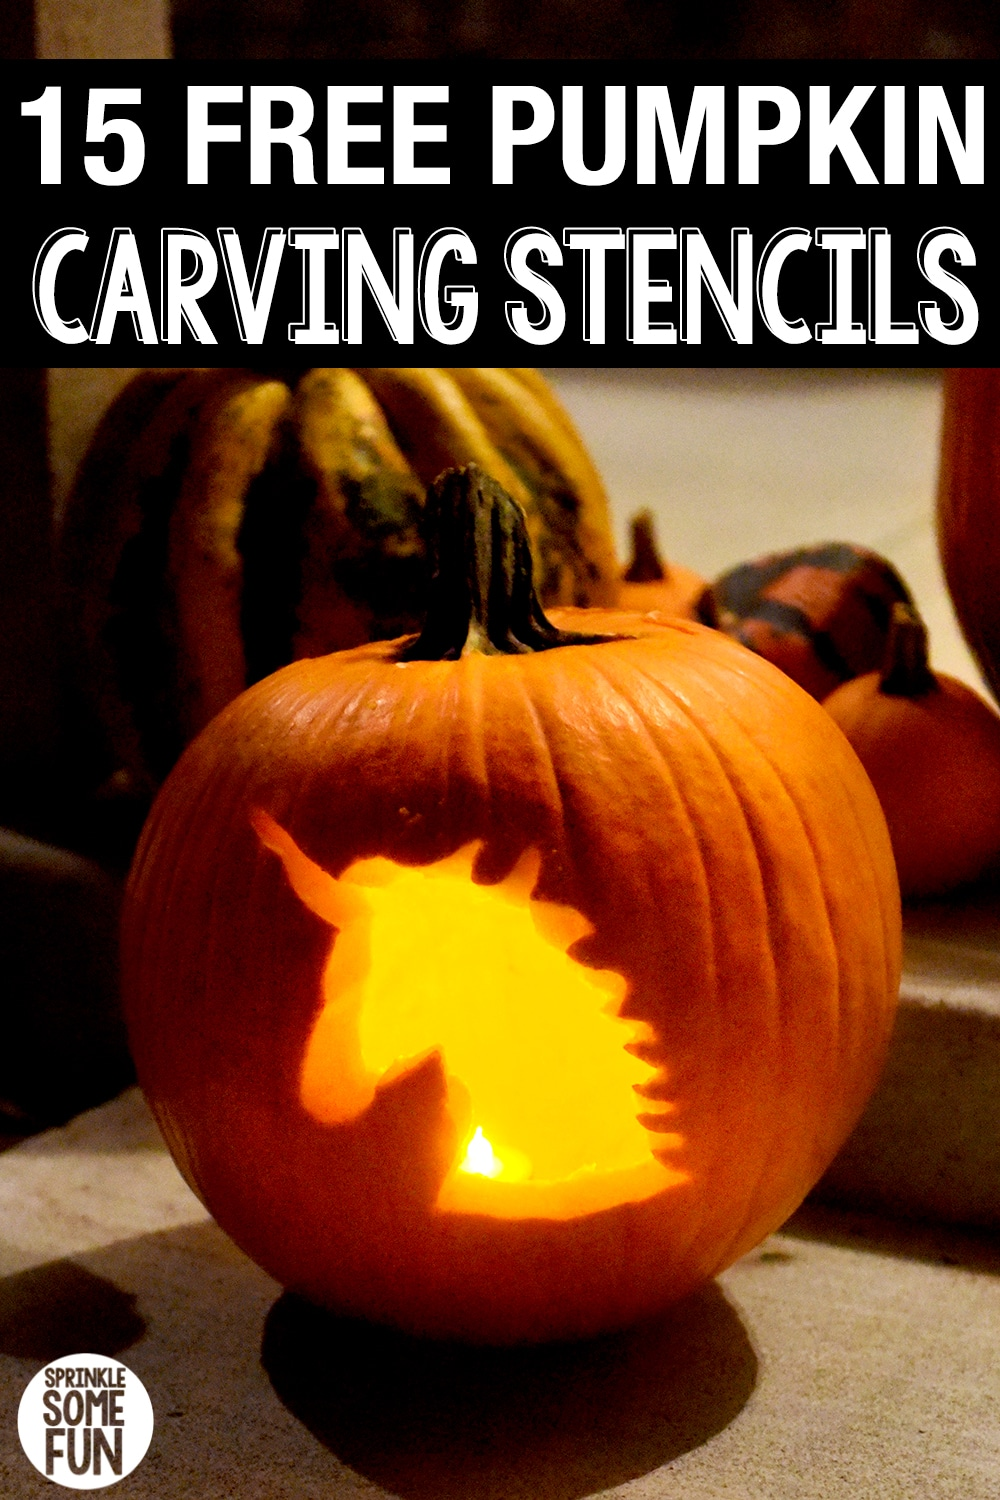 15 Free Pumpkin Carving Stencils to print with trendy emojis, unicorns, Harry Potter and traditional Halloween designs!  Plus, a How To guide to making the best designs!  #pumpkincarvingstencils #pumpkincarving #pumpkincarvingdesigns #halloween #halloweendesigns #pumpkincarvingideas #easypumpkincarving #pumpkincarvingforkids #kids #printables #stencils #halloweenporch #DIYpumpkin #pumpkincarvingpatterns #creative #template #easy